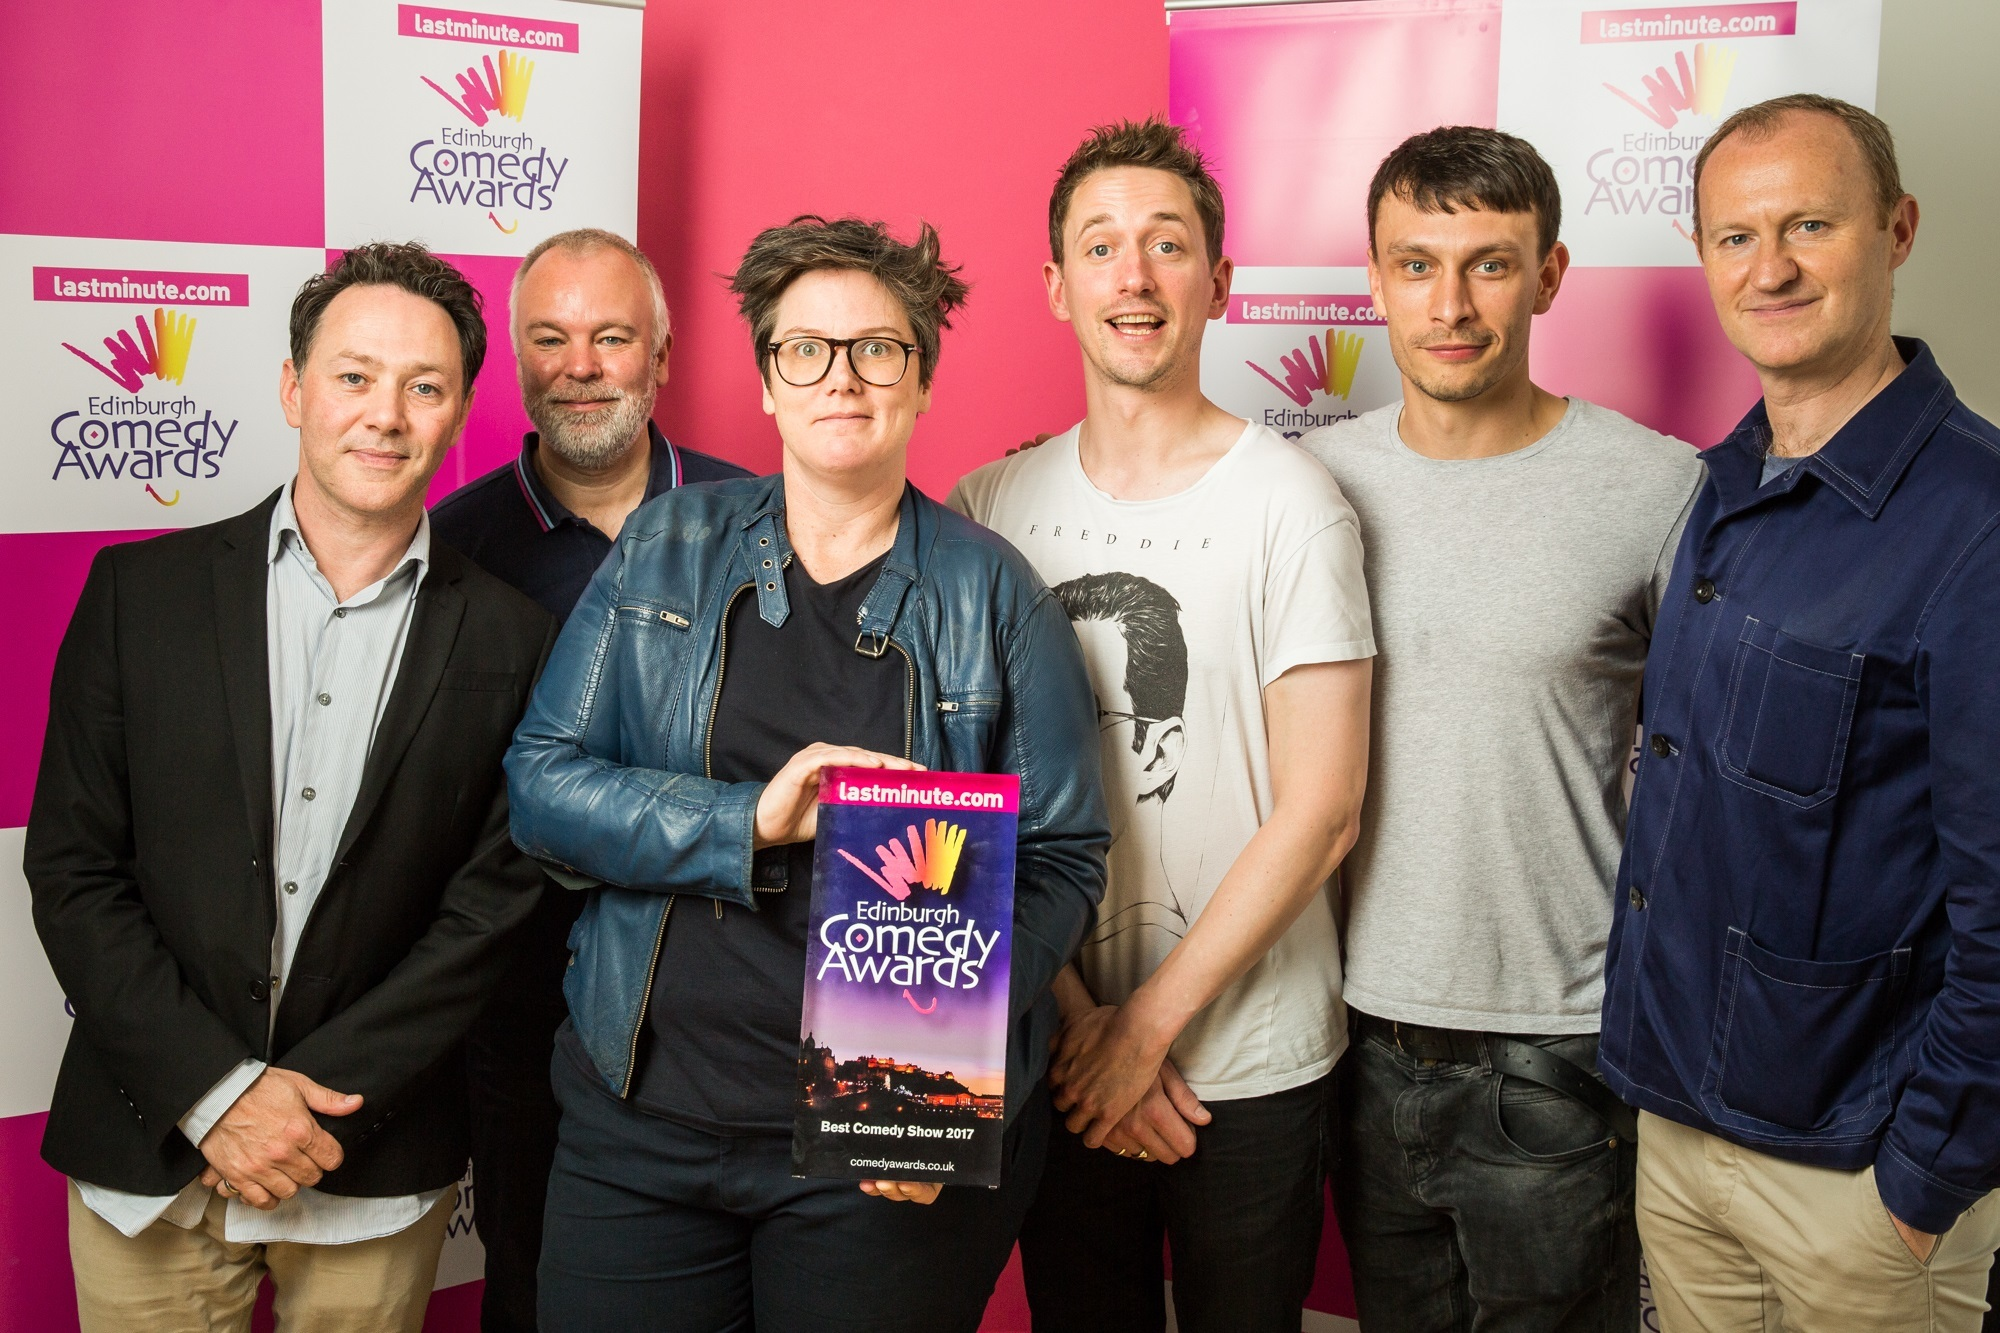 e0ffbf40c Edinburgh comedy award winners Hannah Gadsby and John Robins with Richard  Gadd and the League of